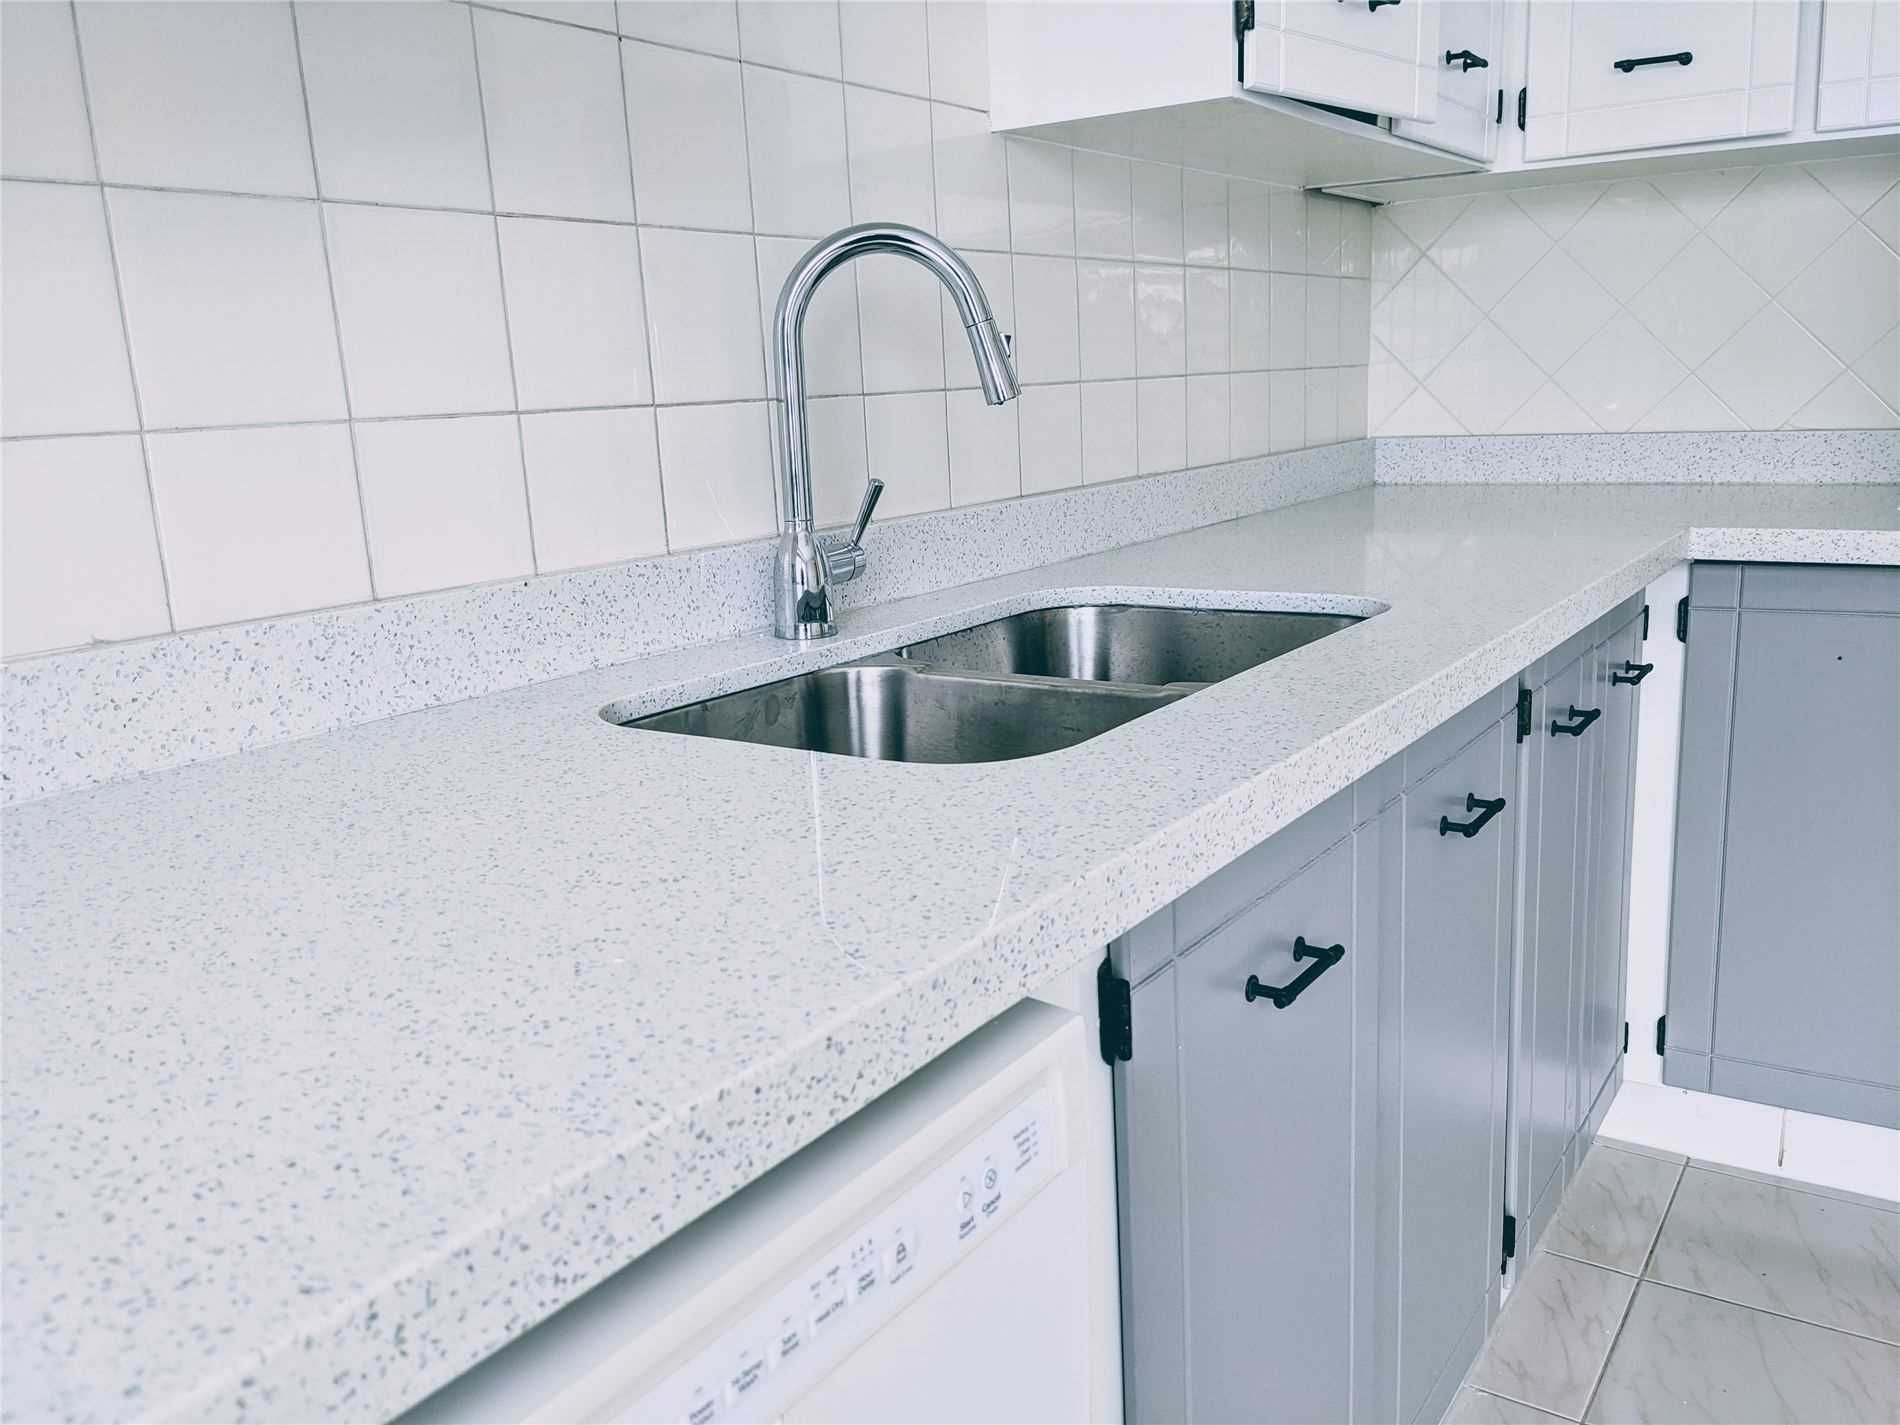 159 Trudelle St, unit null for rent in Toronto - image #2